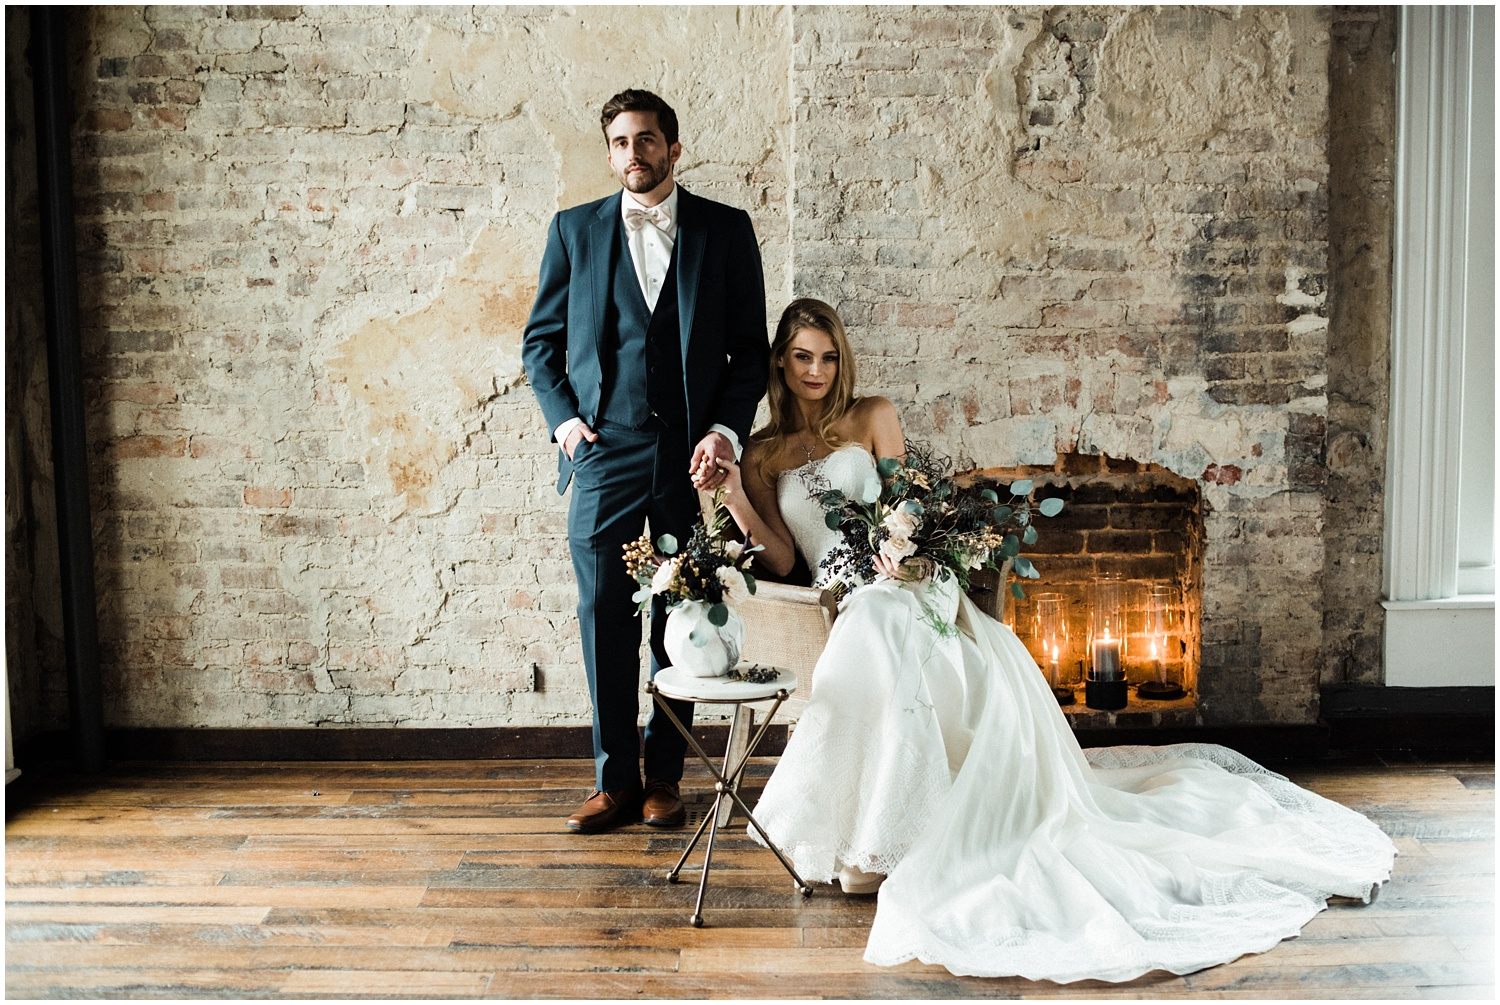 Aimee Thomas _Midwest Ohio Photographer_Modern Wedding Styled Shoot Nashville Tennessee_The Cordelle_0050.jpg